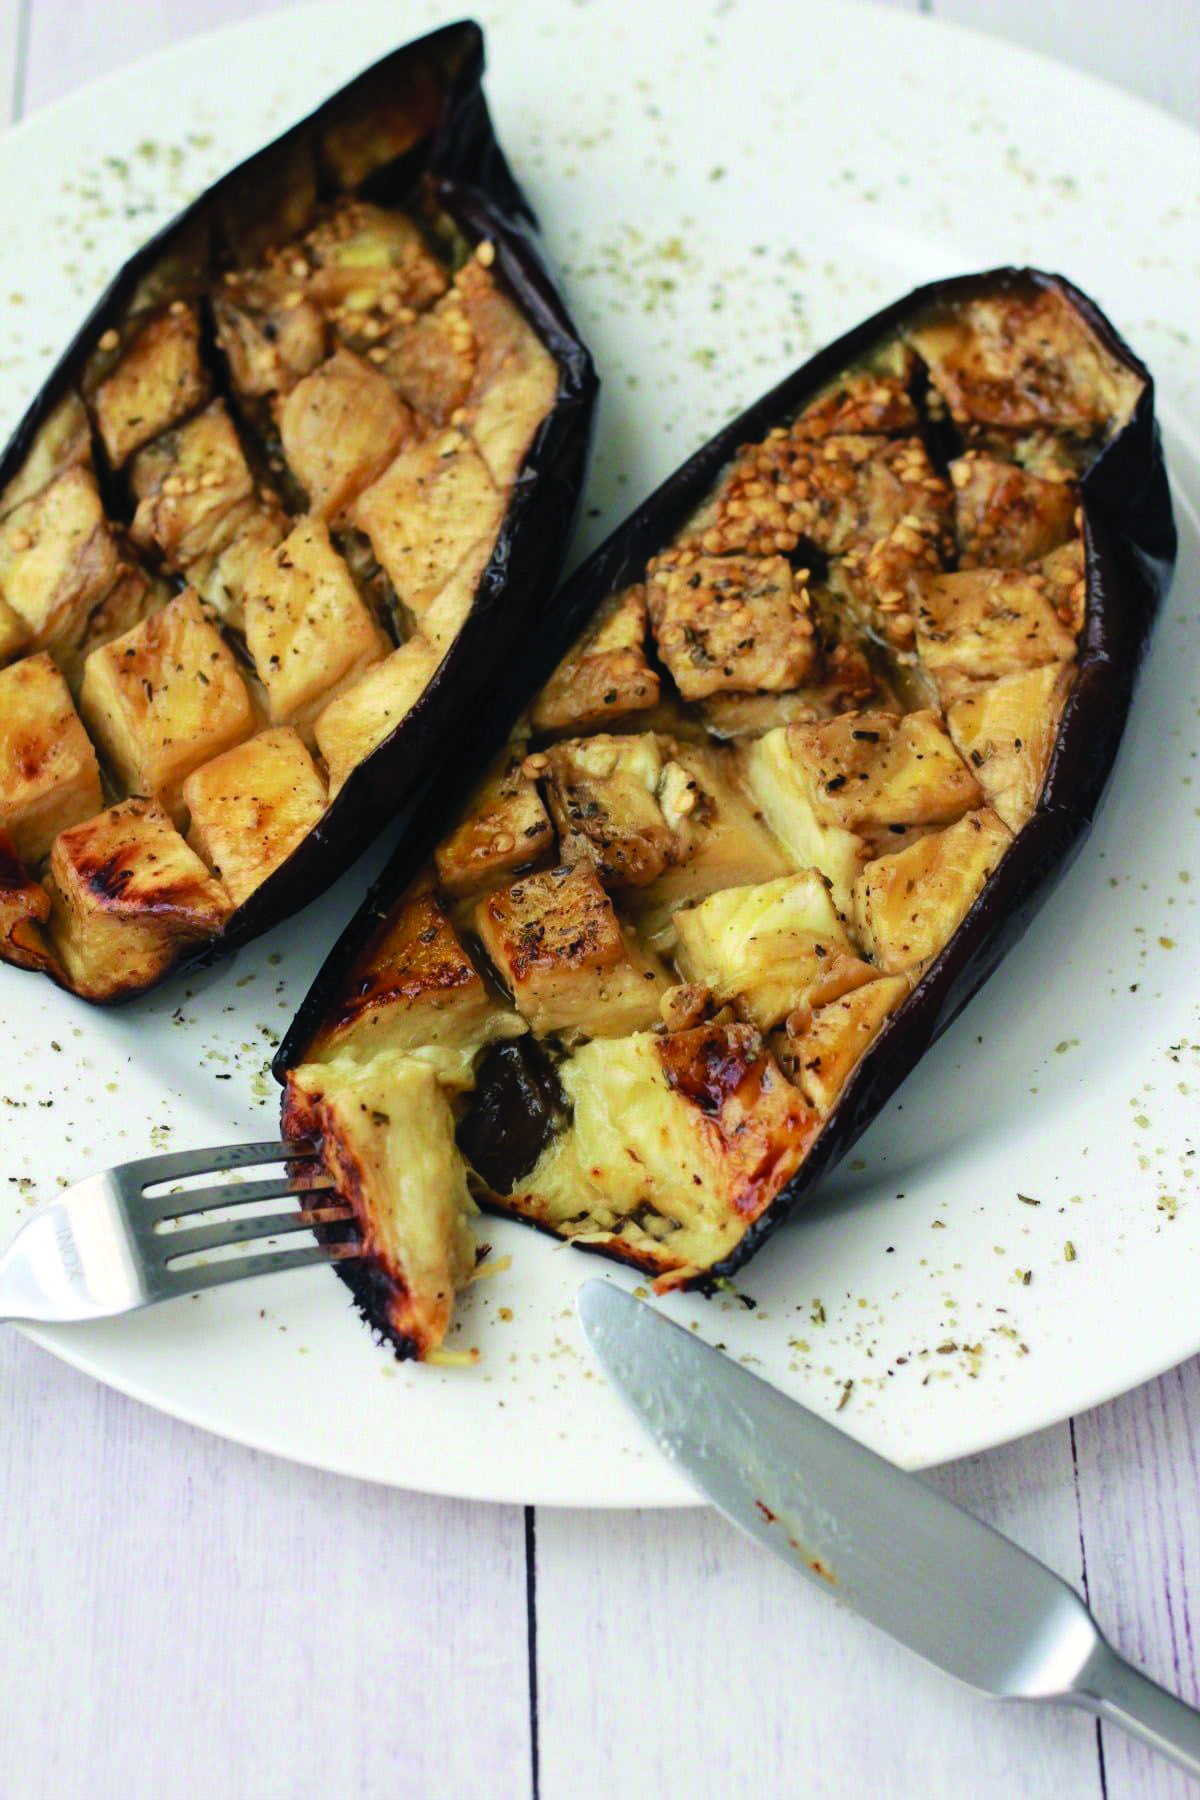 Gorgeous Eggplant Recipes Roasted Special Diet Roasted Eggplant Recipes Roast Eggplant Nutritious Snacks